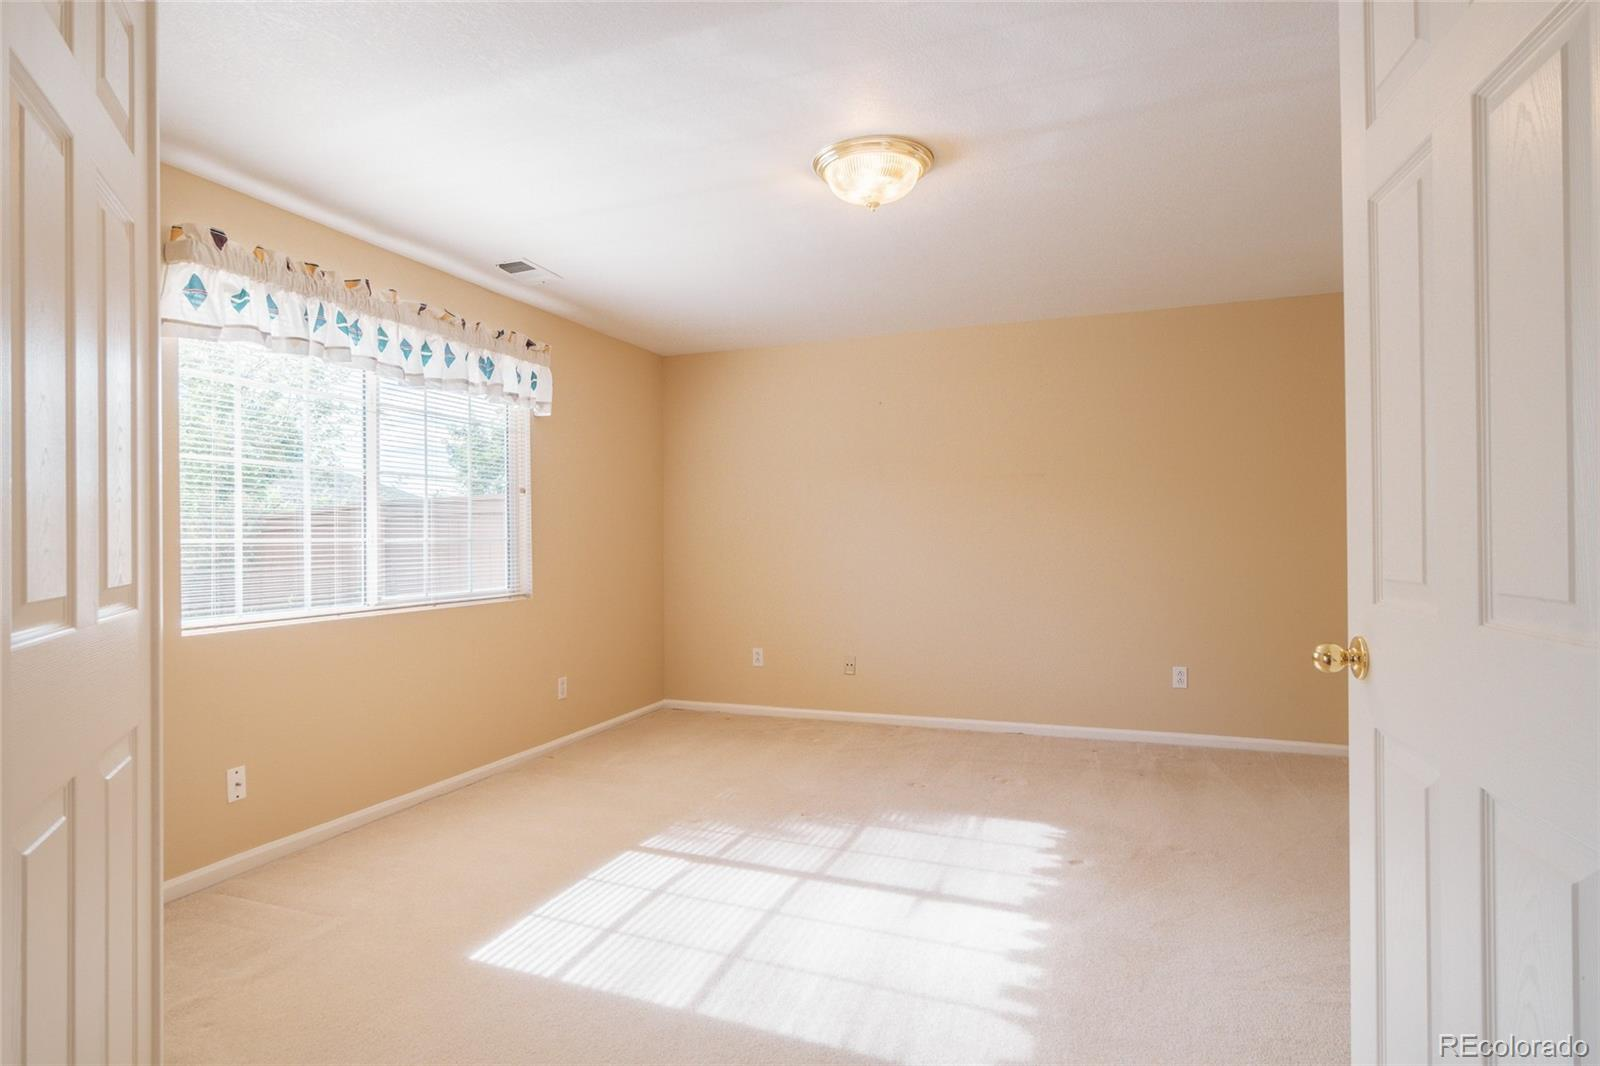 MLS# 4859119 - 22 - 9137 Woodland Drive, Highlands Ranch, CO 80126